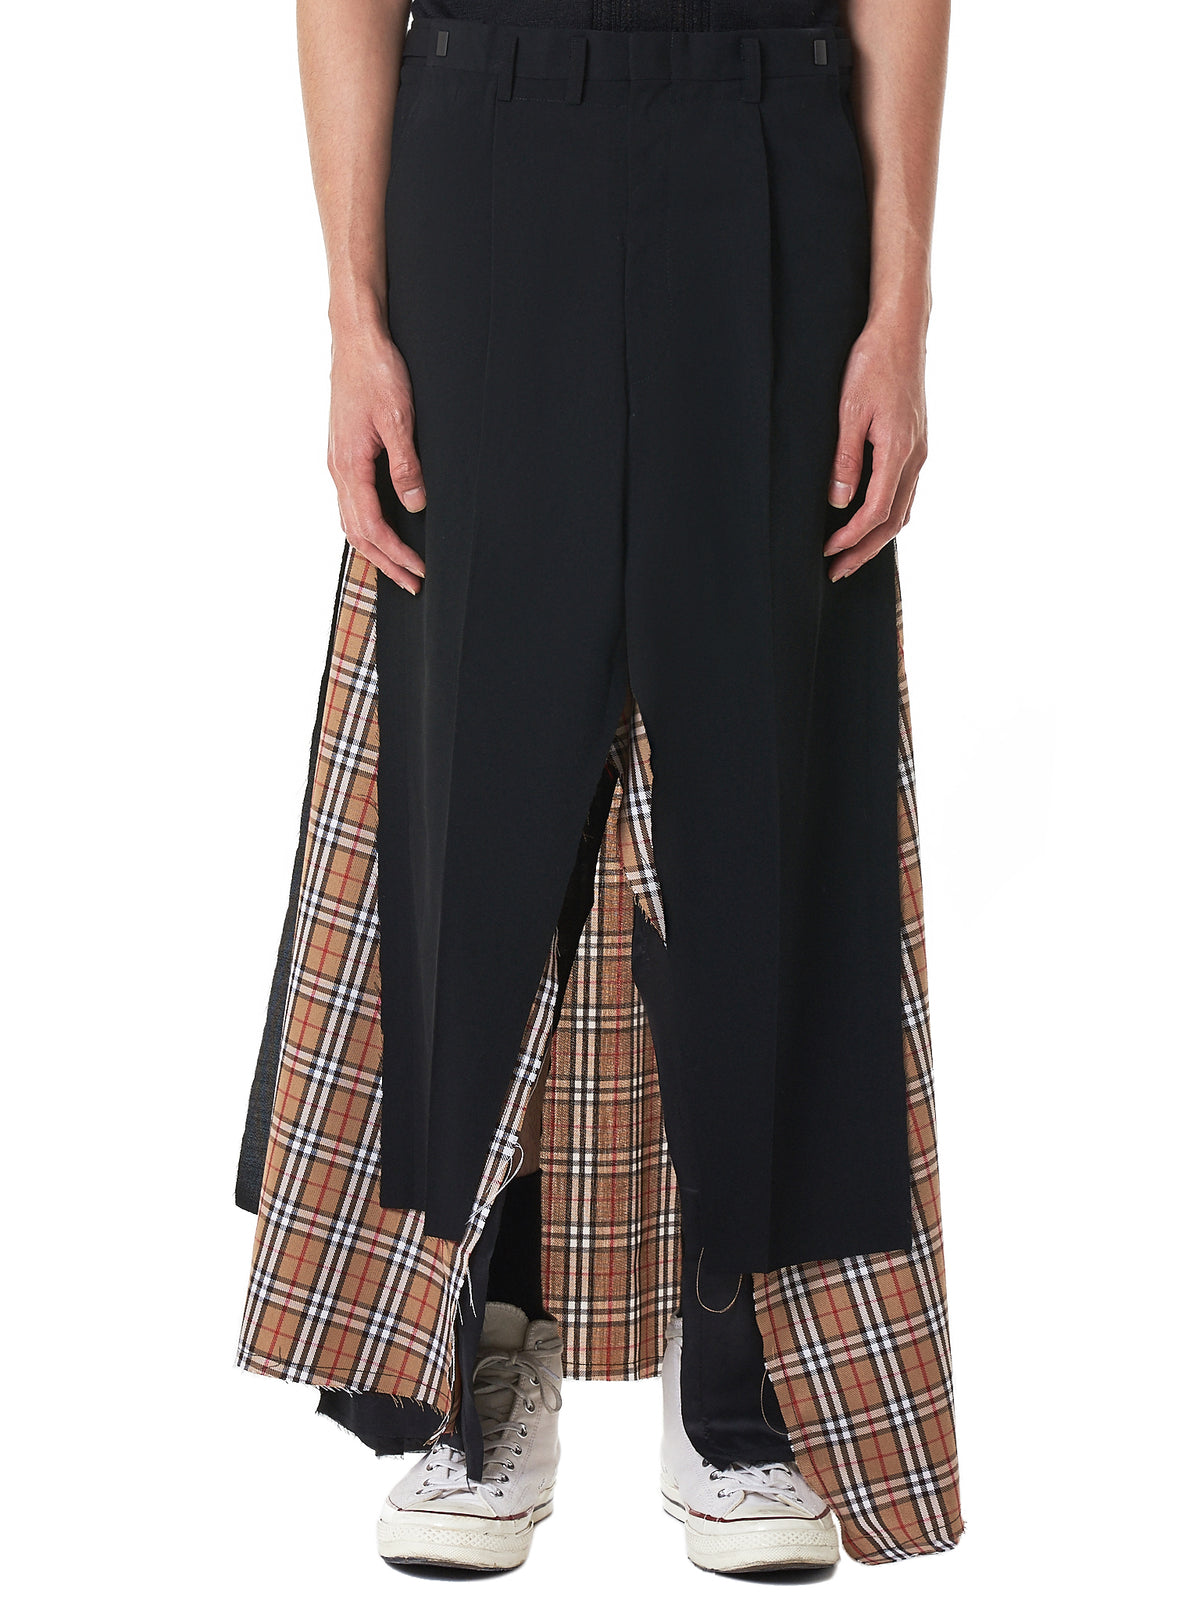 Layered Checked Skirt (YHPC05-BLACK-CHECKED)